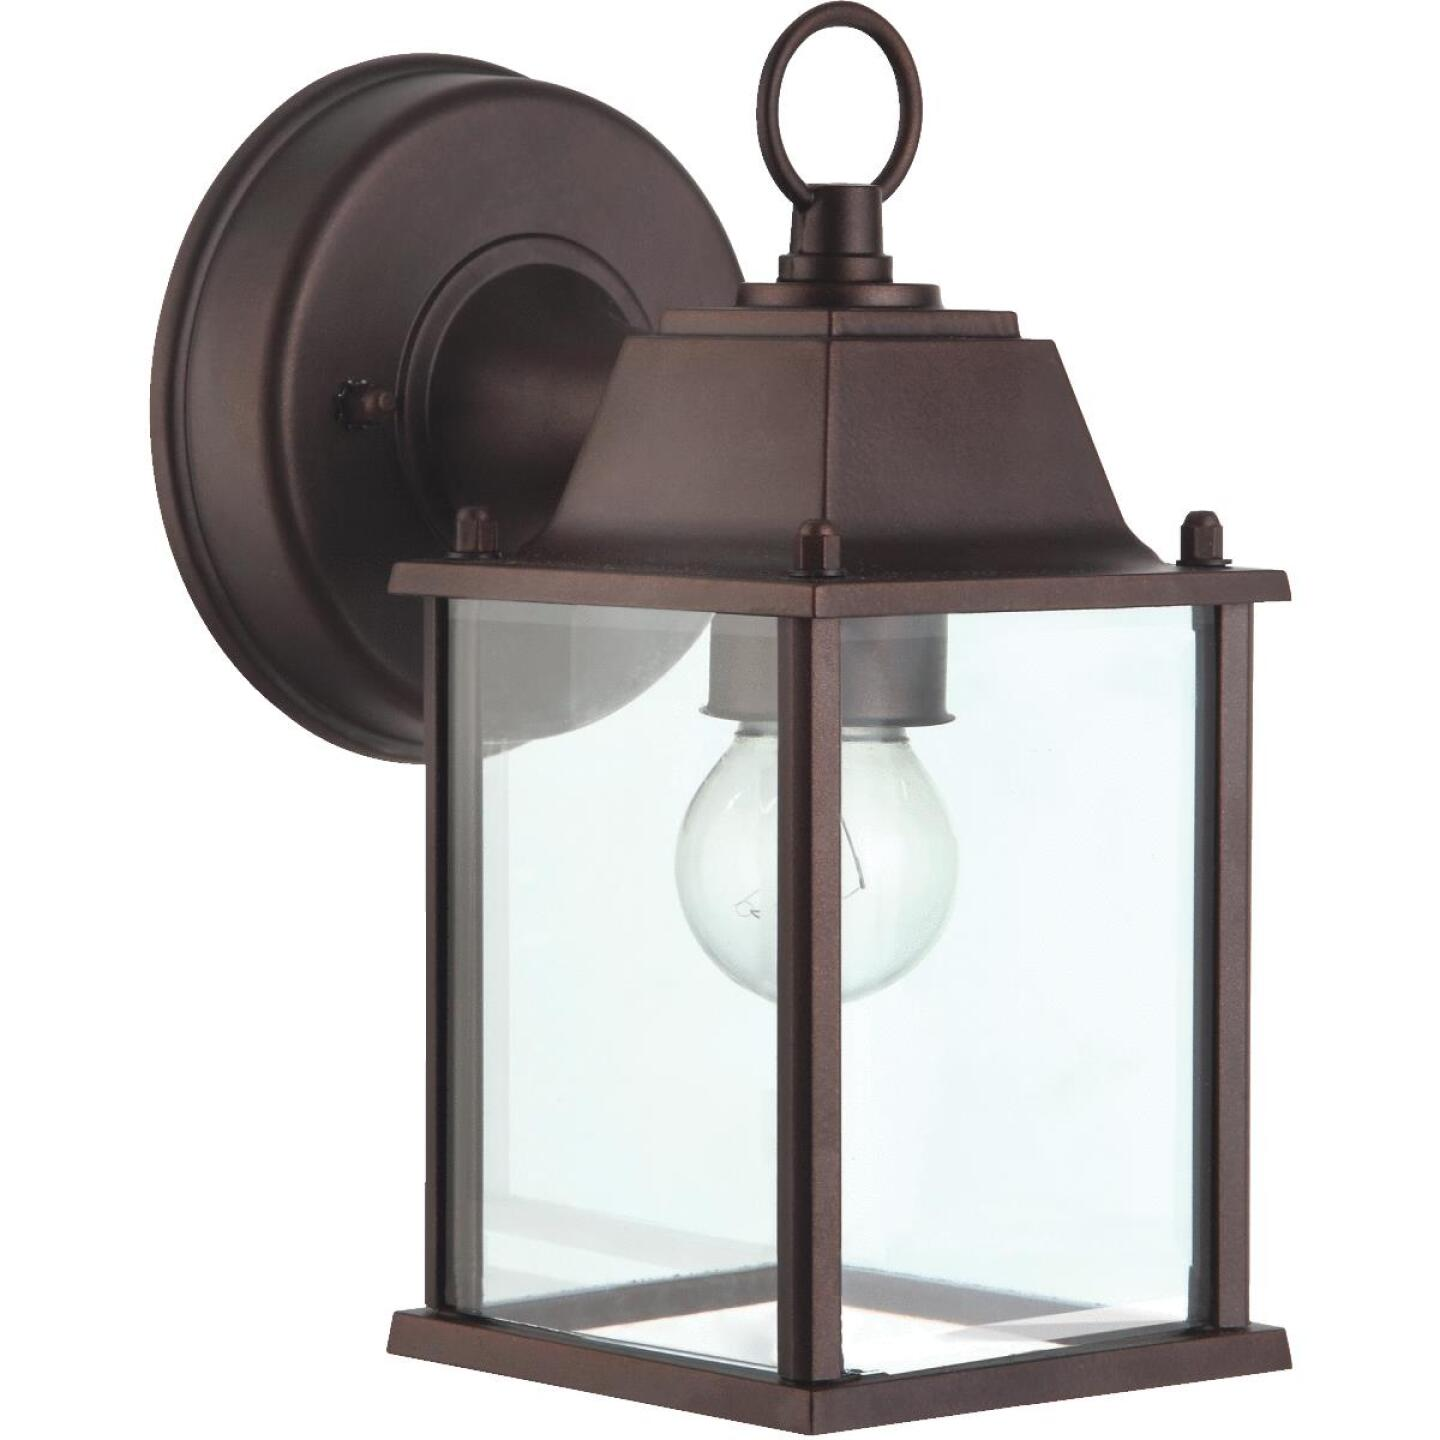 Home Impressions 100W Oil-Rubbed Bronze Incandescent Lantern Outdoor Wall Light Fixture Image 1